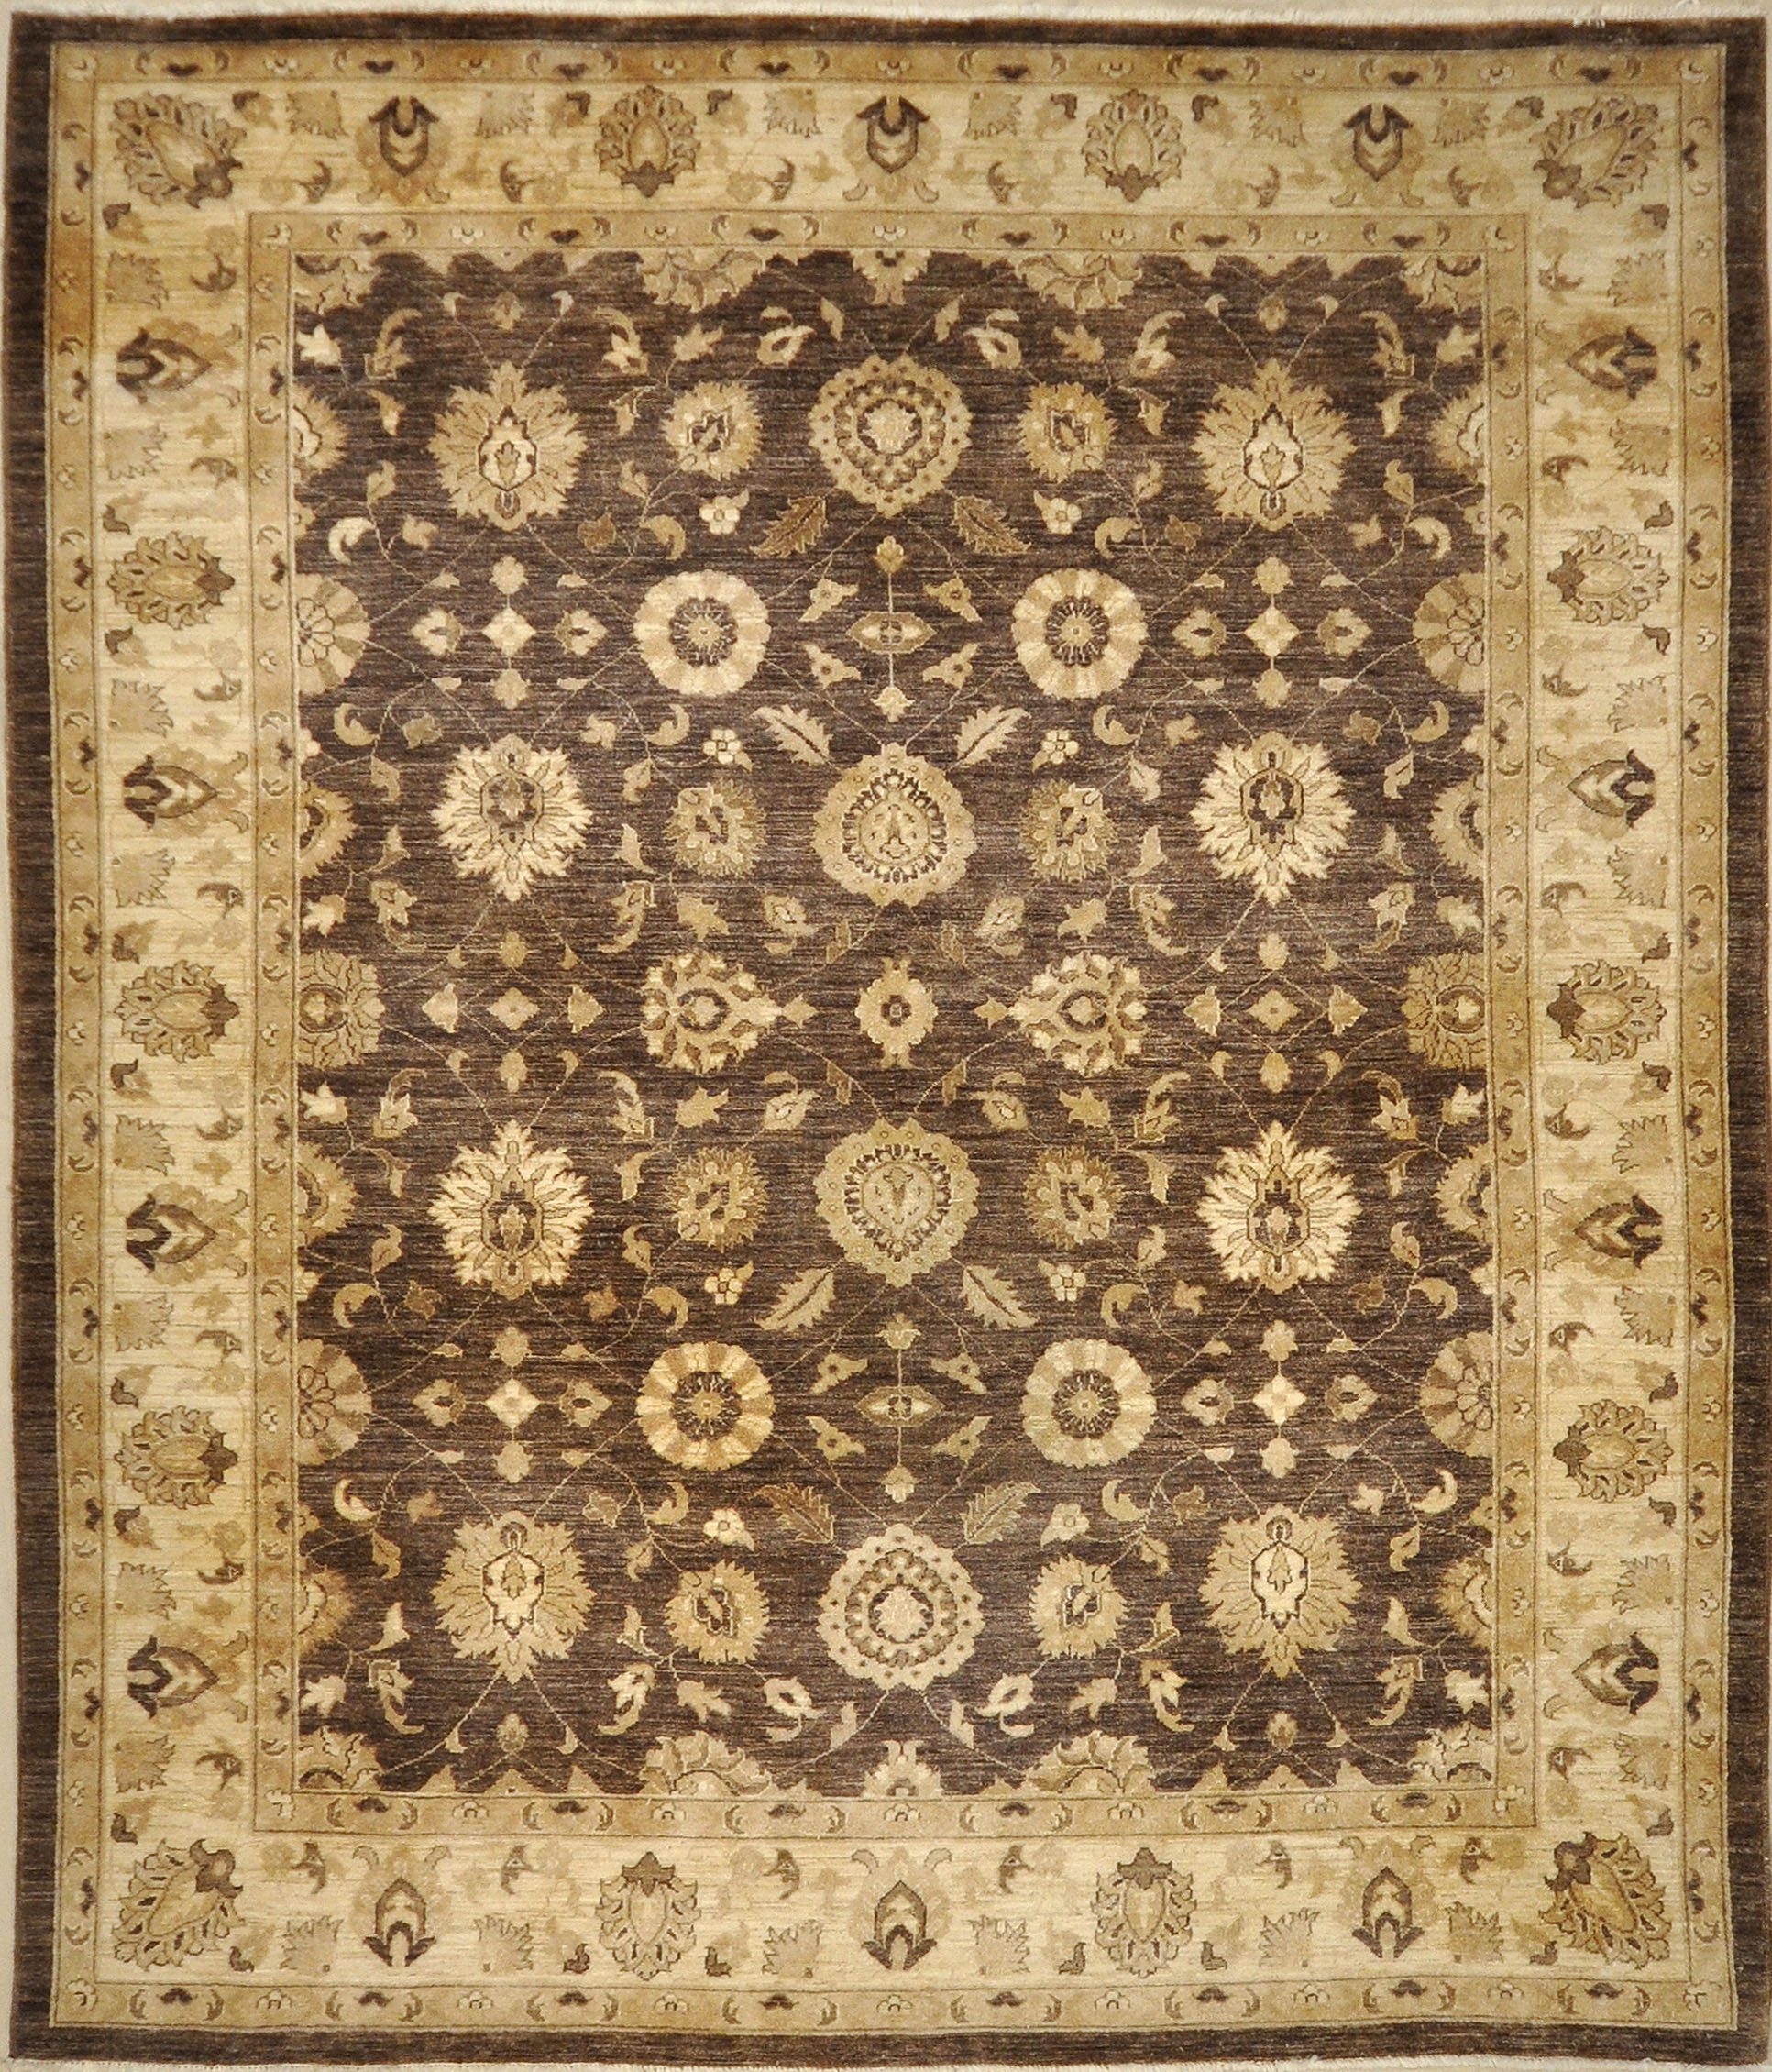 The rugs of Sultanabad are extremely desirable in the modern marketplace. The popularity of Sultanabad rugs go back to the mid-19th century 8'1 x 9'10